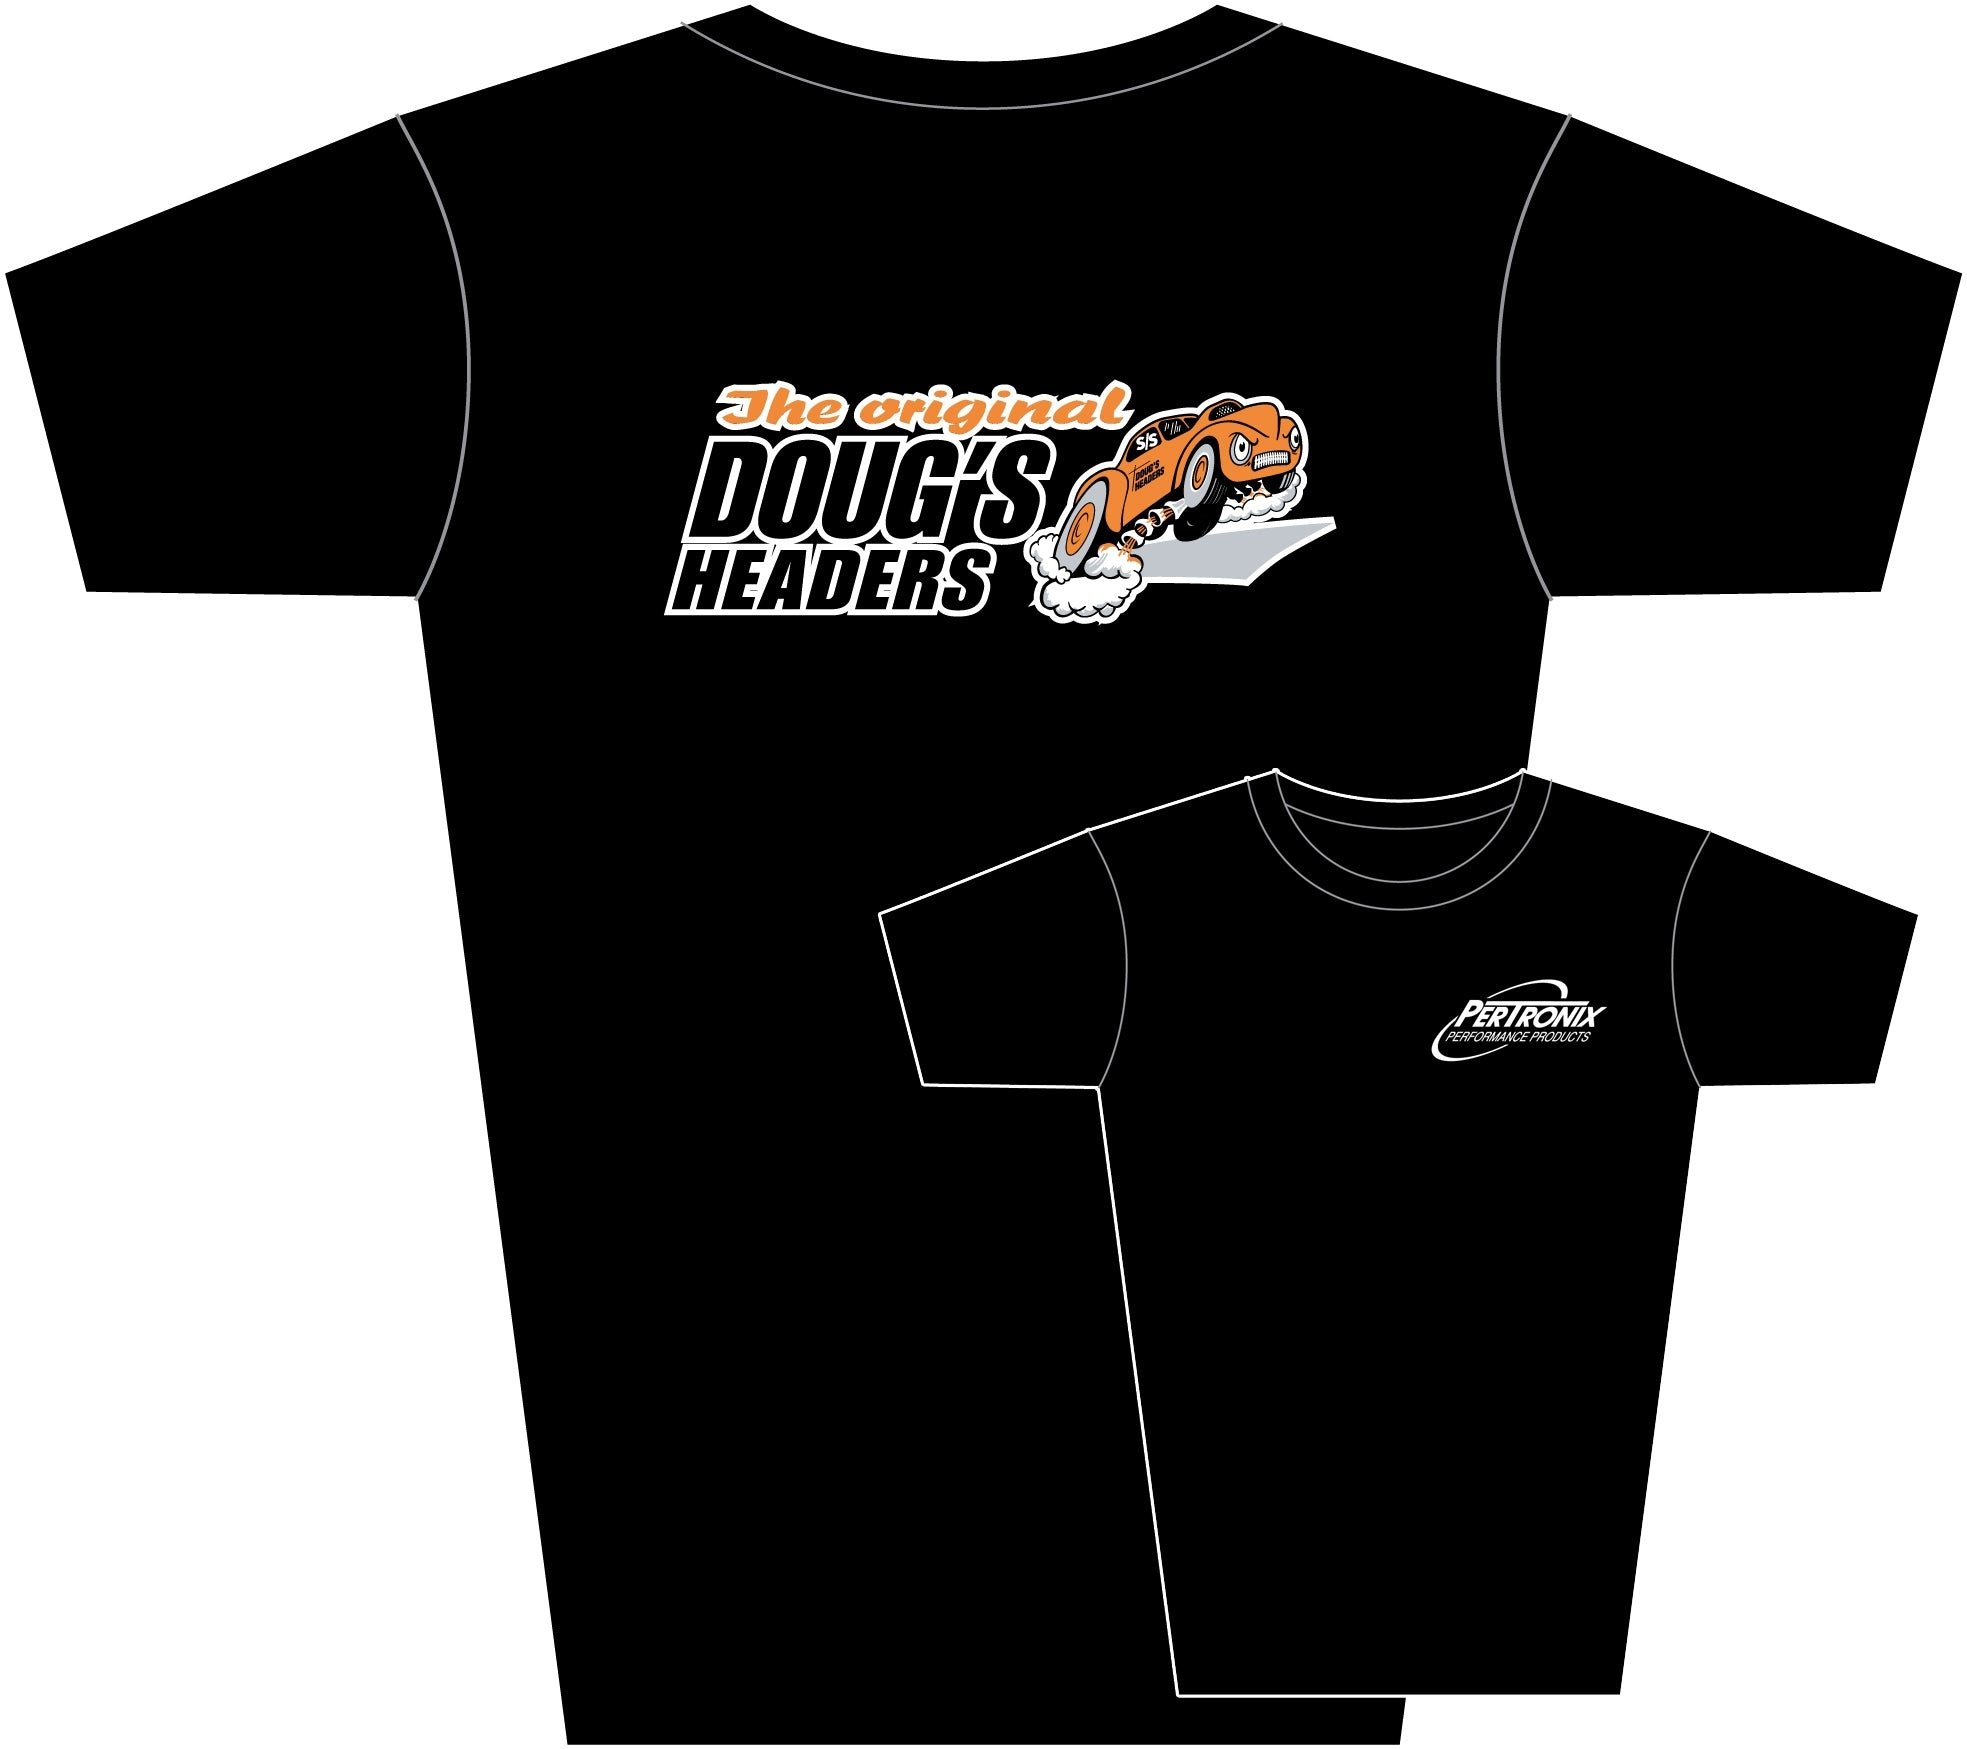 Doug's Headers TS204 Tee Shirt Black XXL